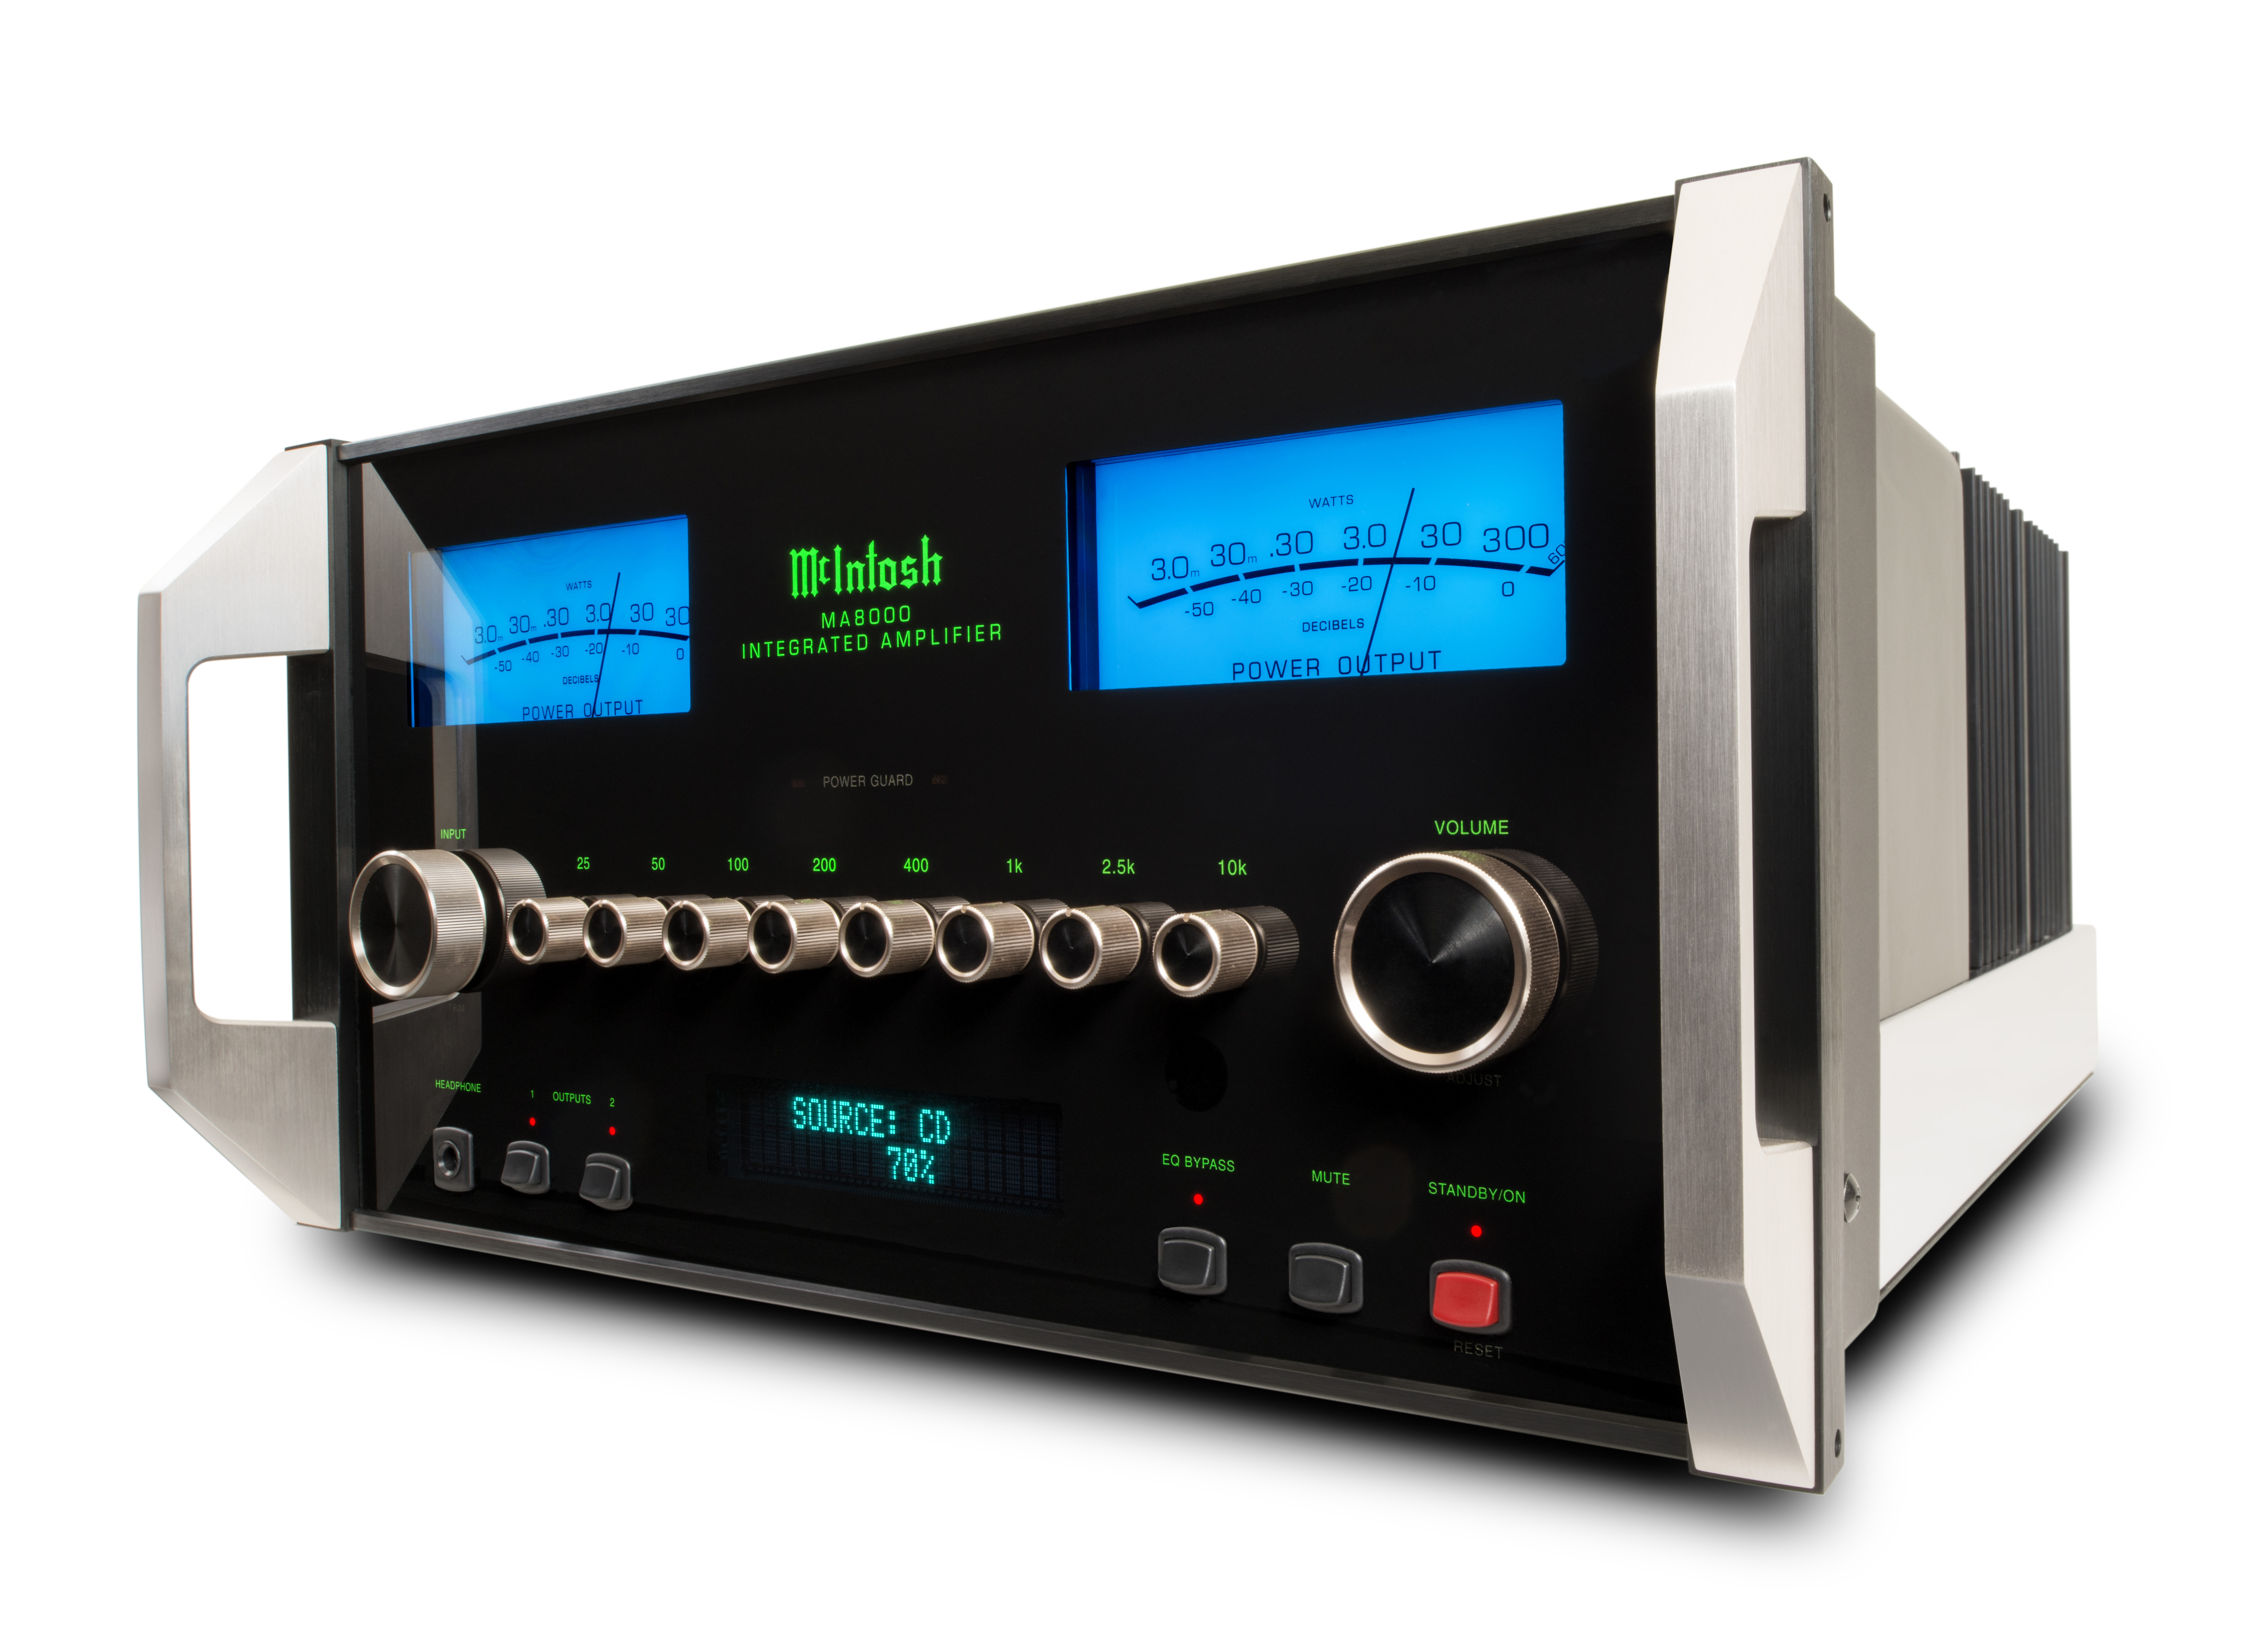 Mcintosh Ma8000 Integrated Amplifier Audio Basics A Modern Stereo System Has Two